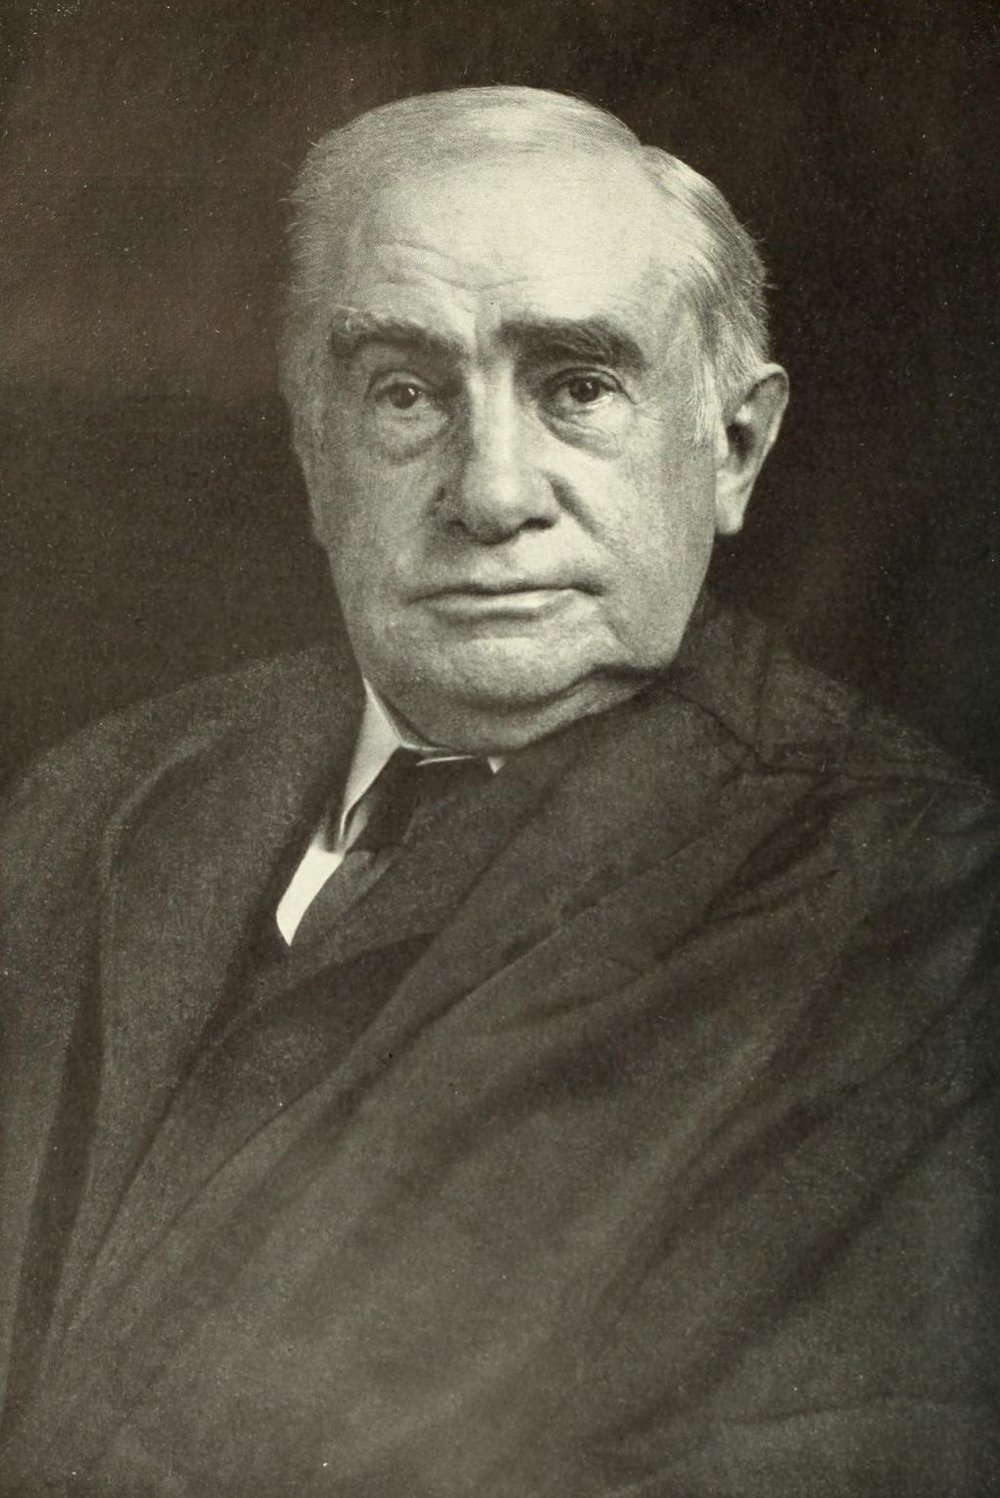 Justice Henry Billings Brown, who write the majority opinion in the Plessy v Ferguson case.